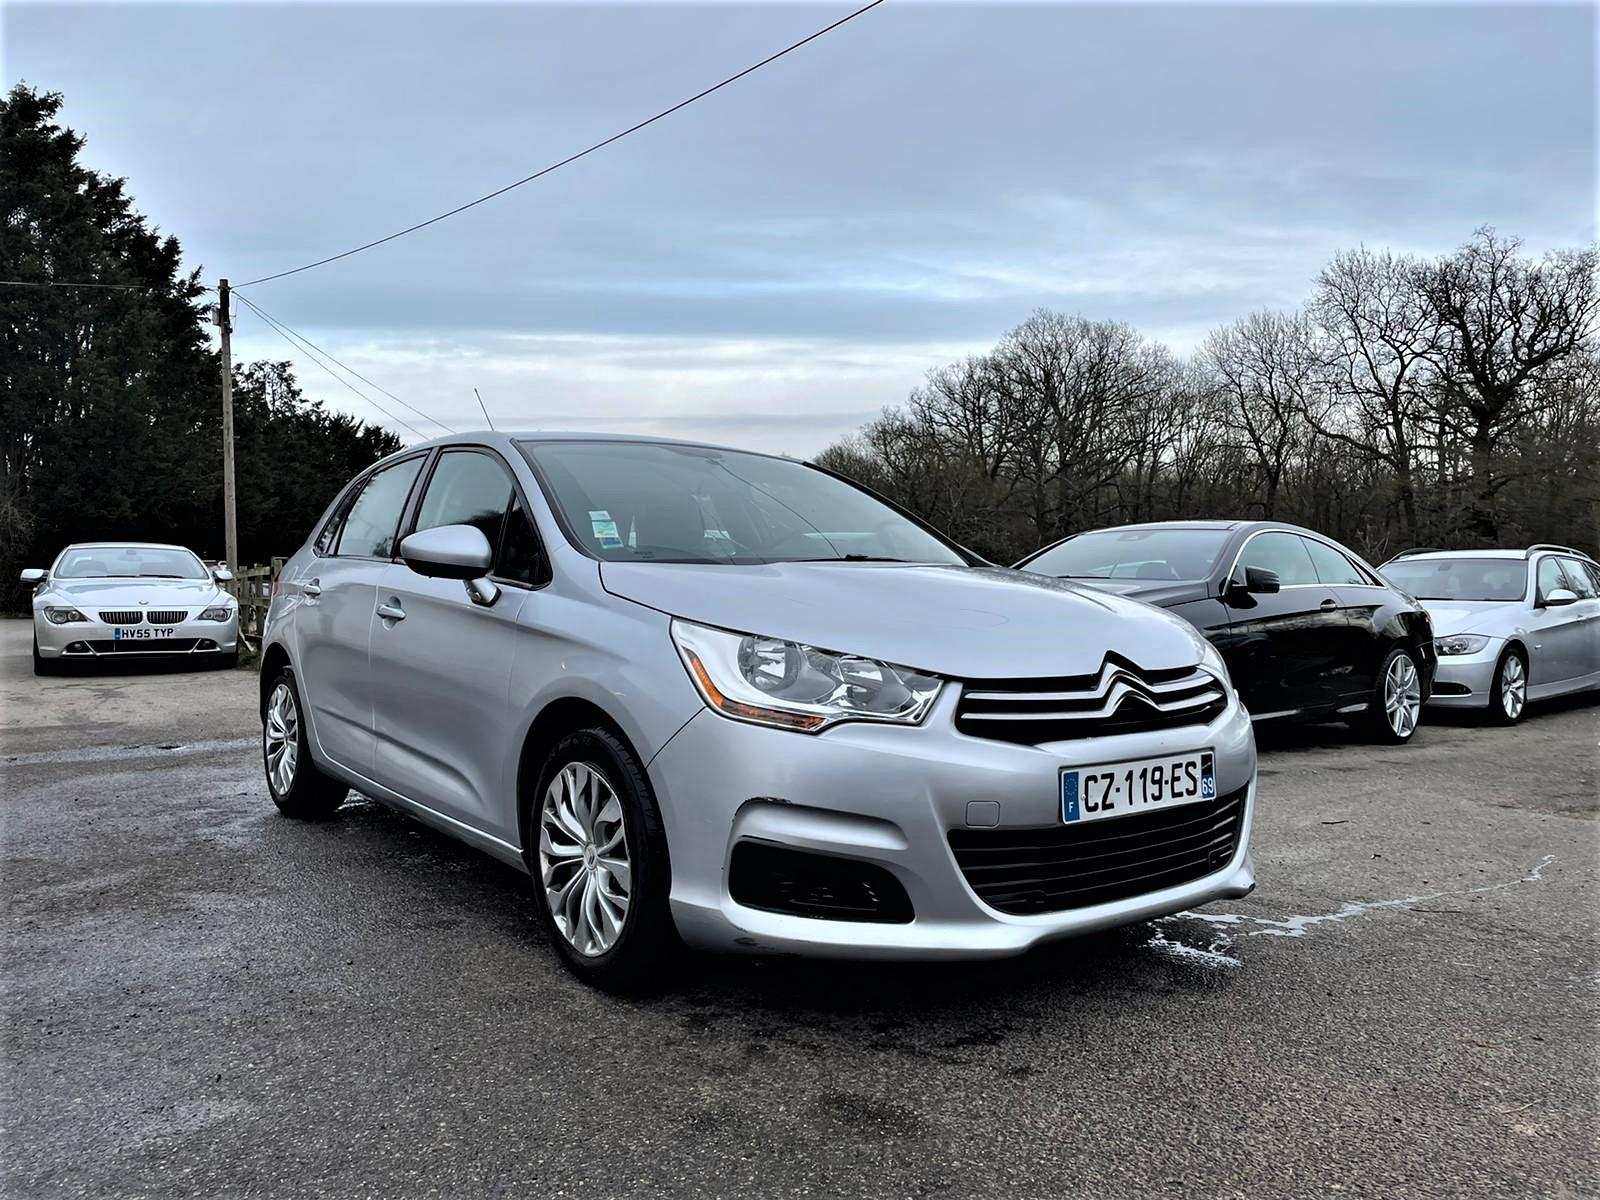 2013 Citroen C4 1.6 e-HDi [115] Exclusive 5dr For Sale In Chesham, Buckinghamshire